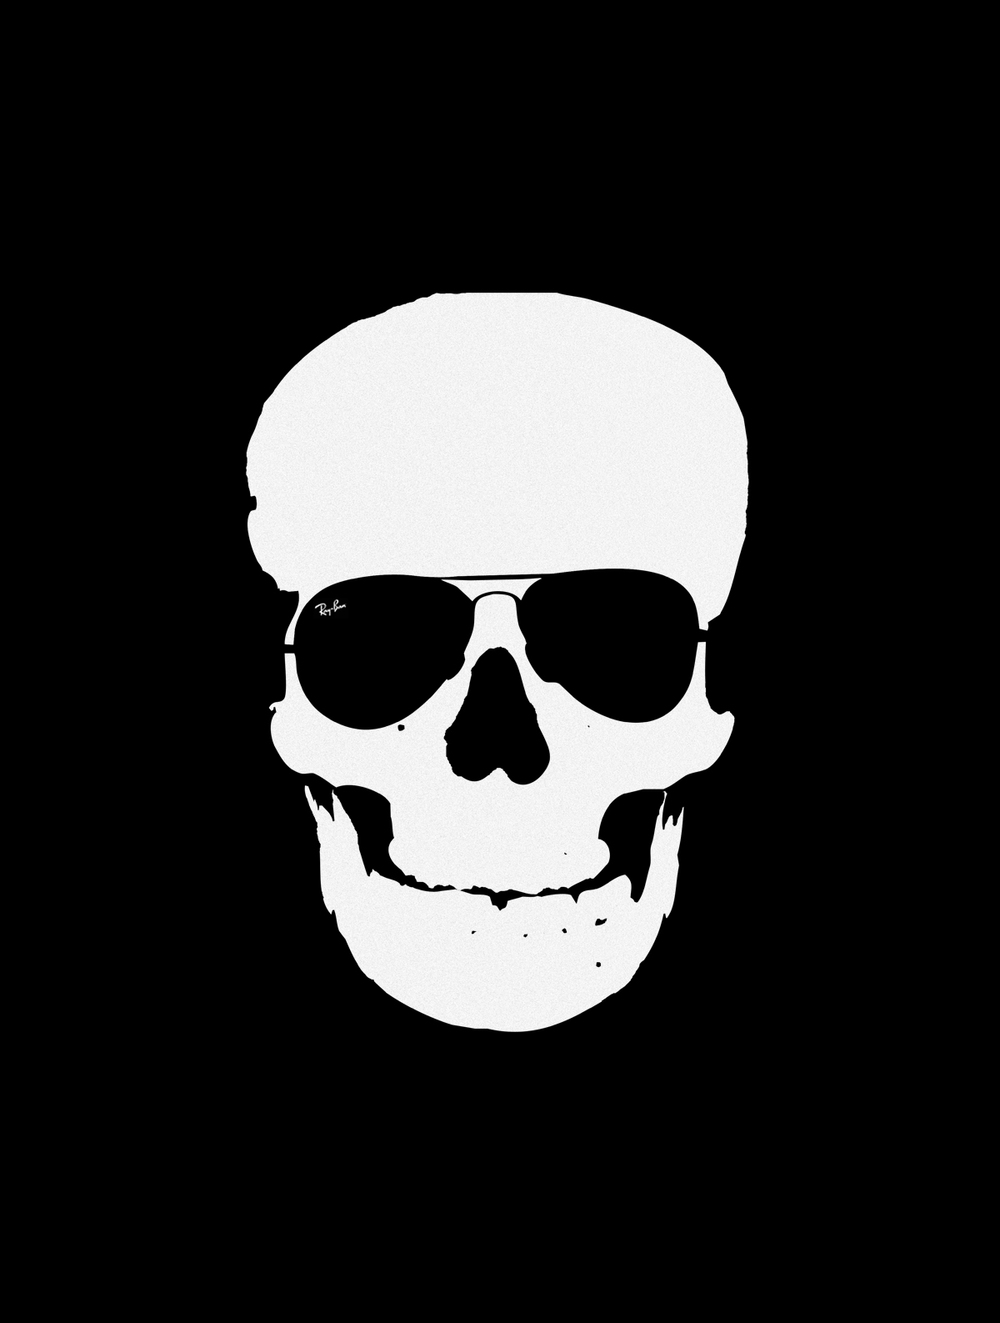 Ray-Ban, Never Hide, Skull